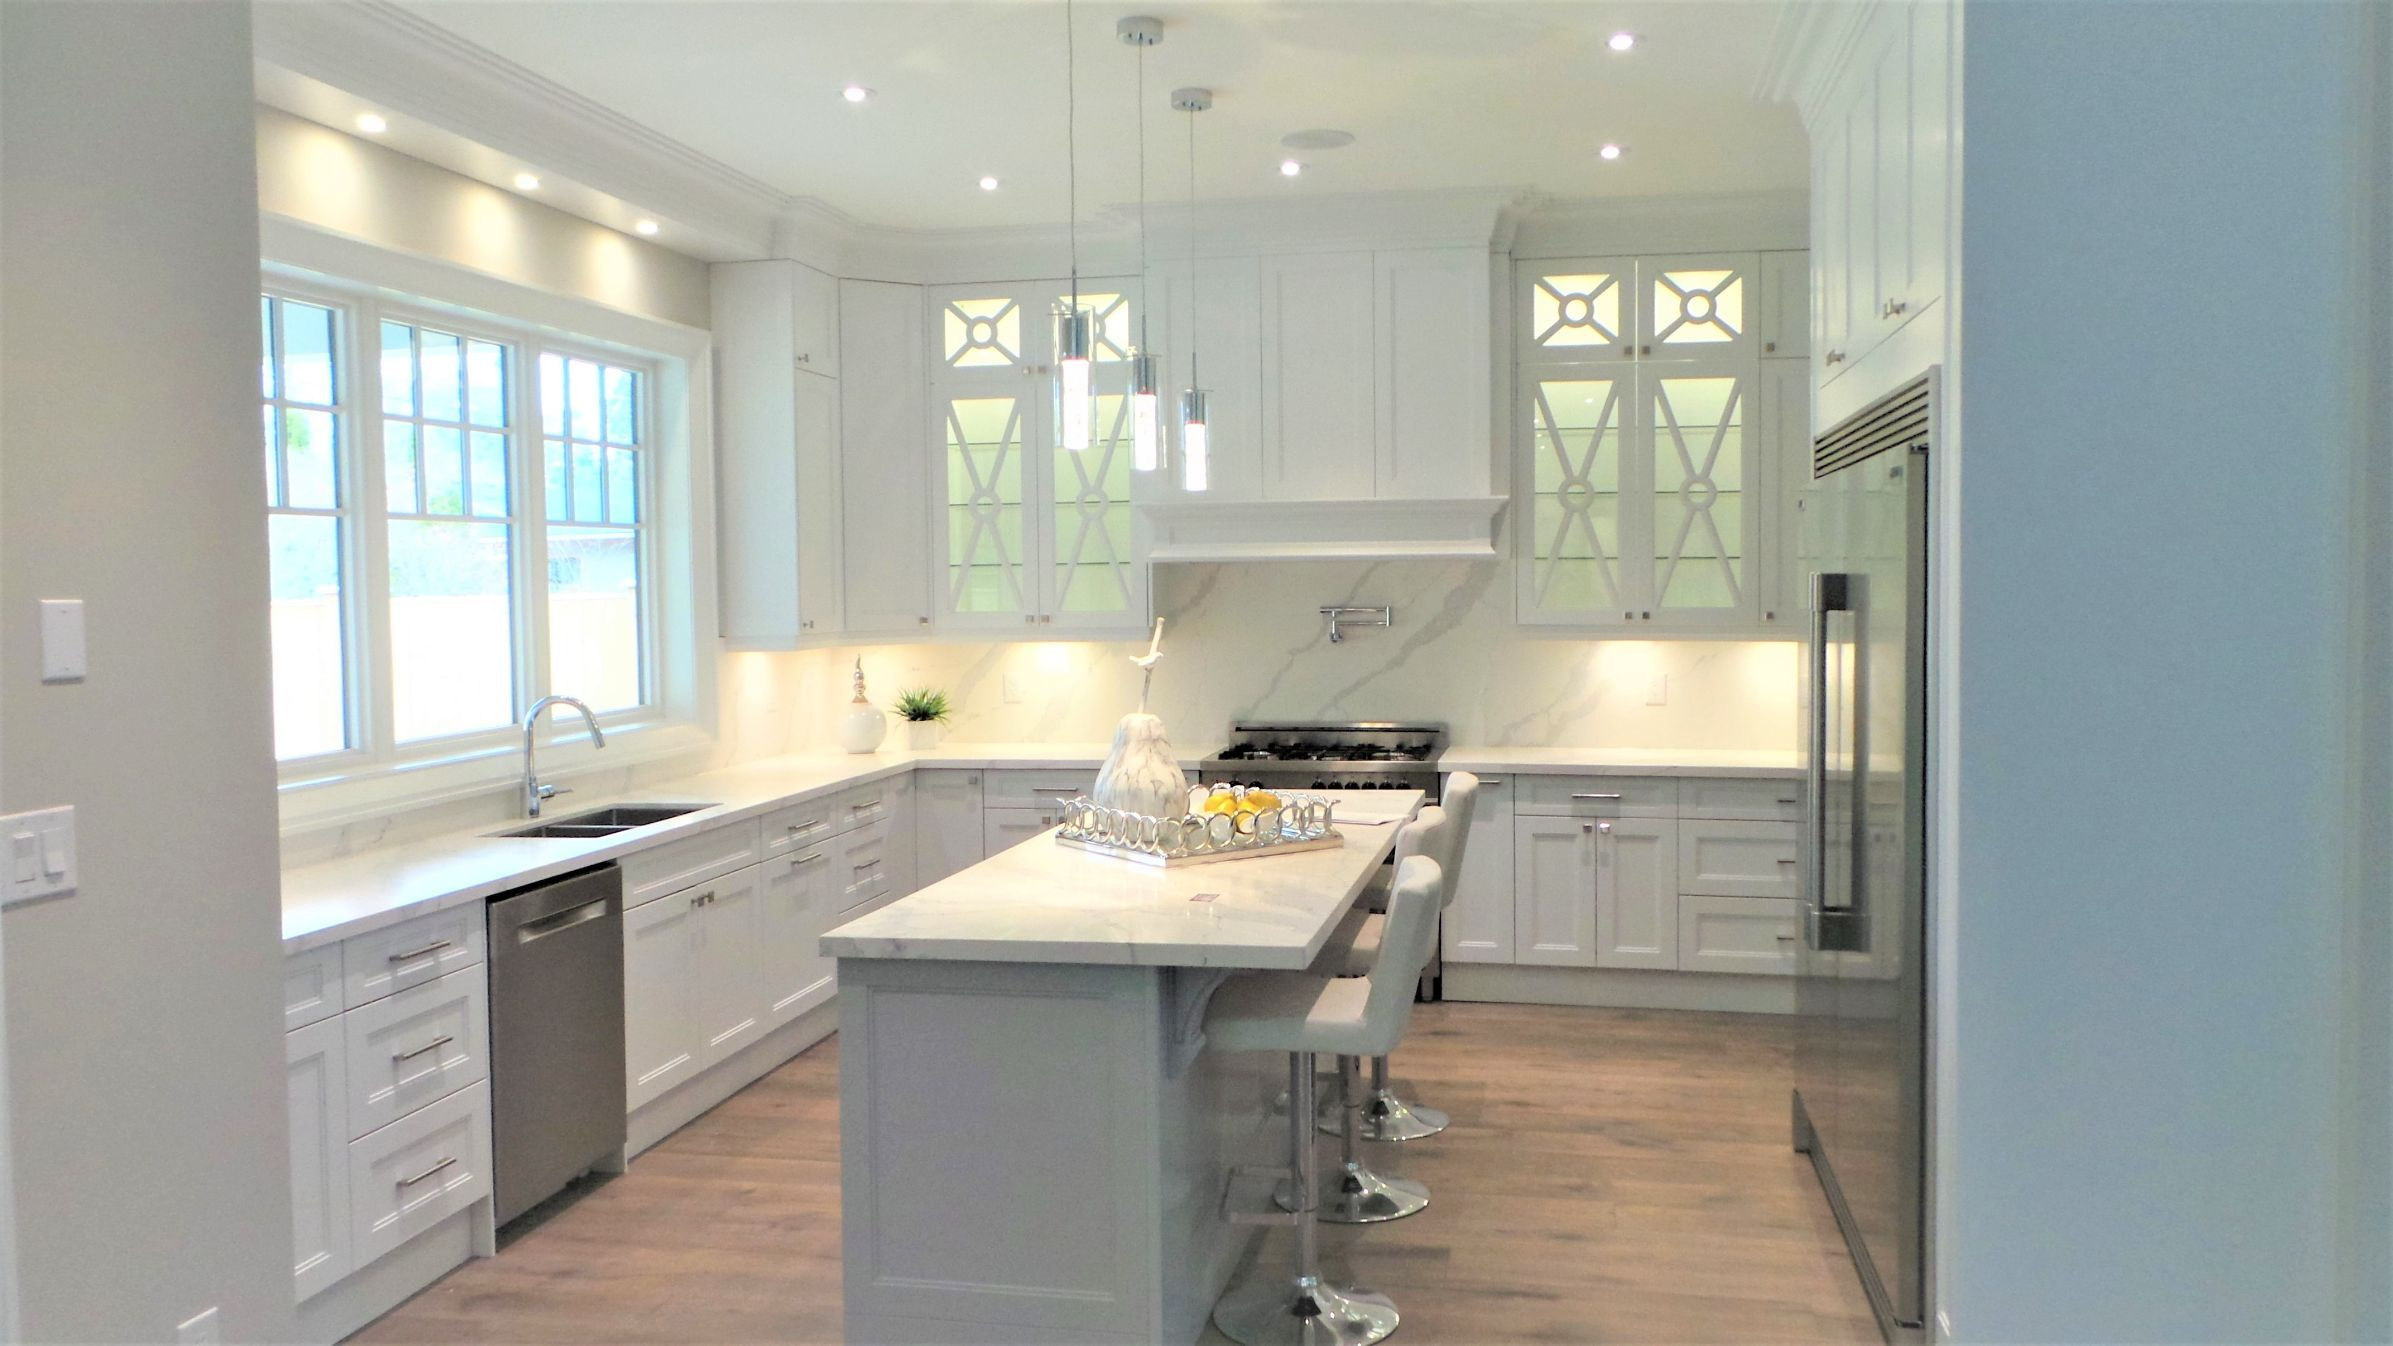 Modern kitchen with countertop